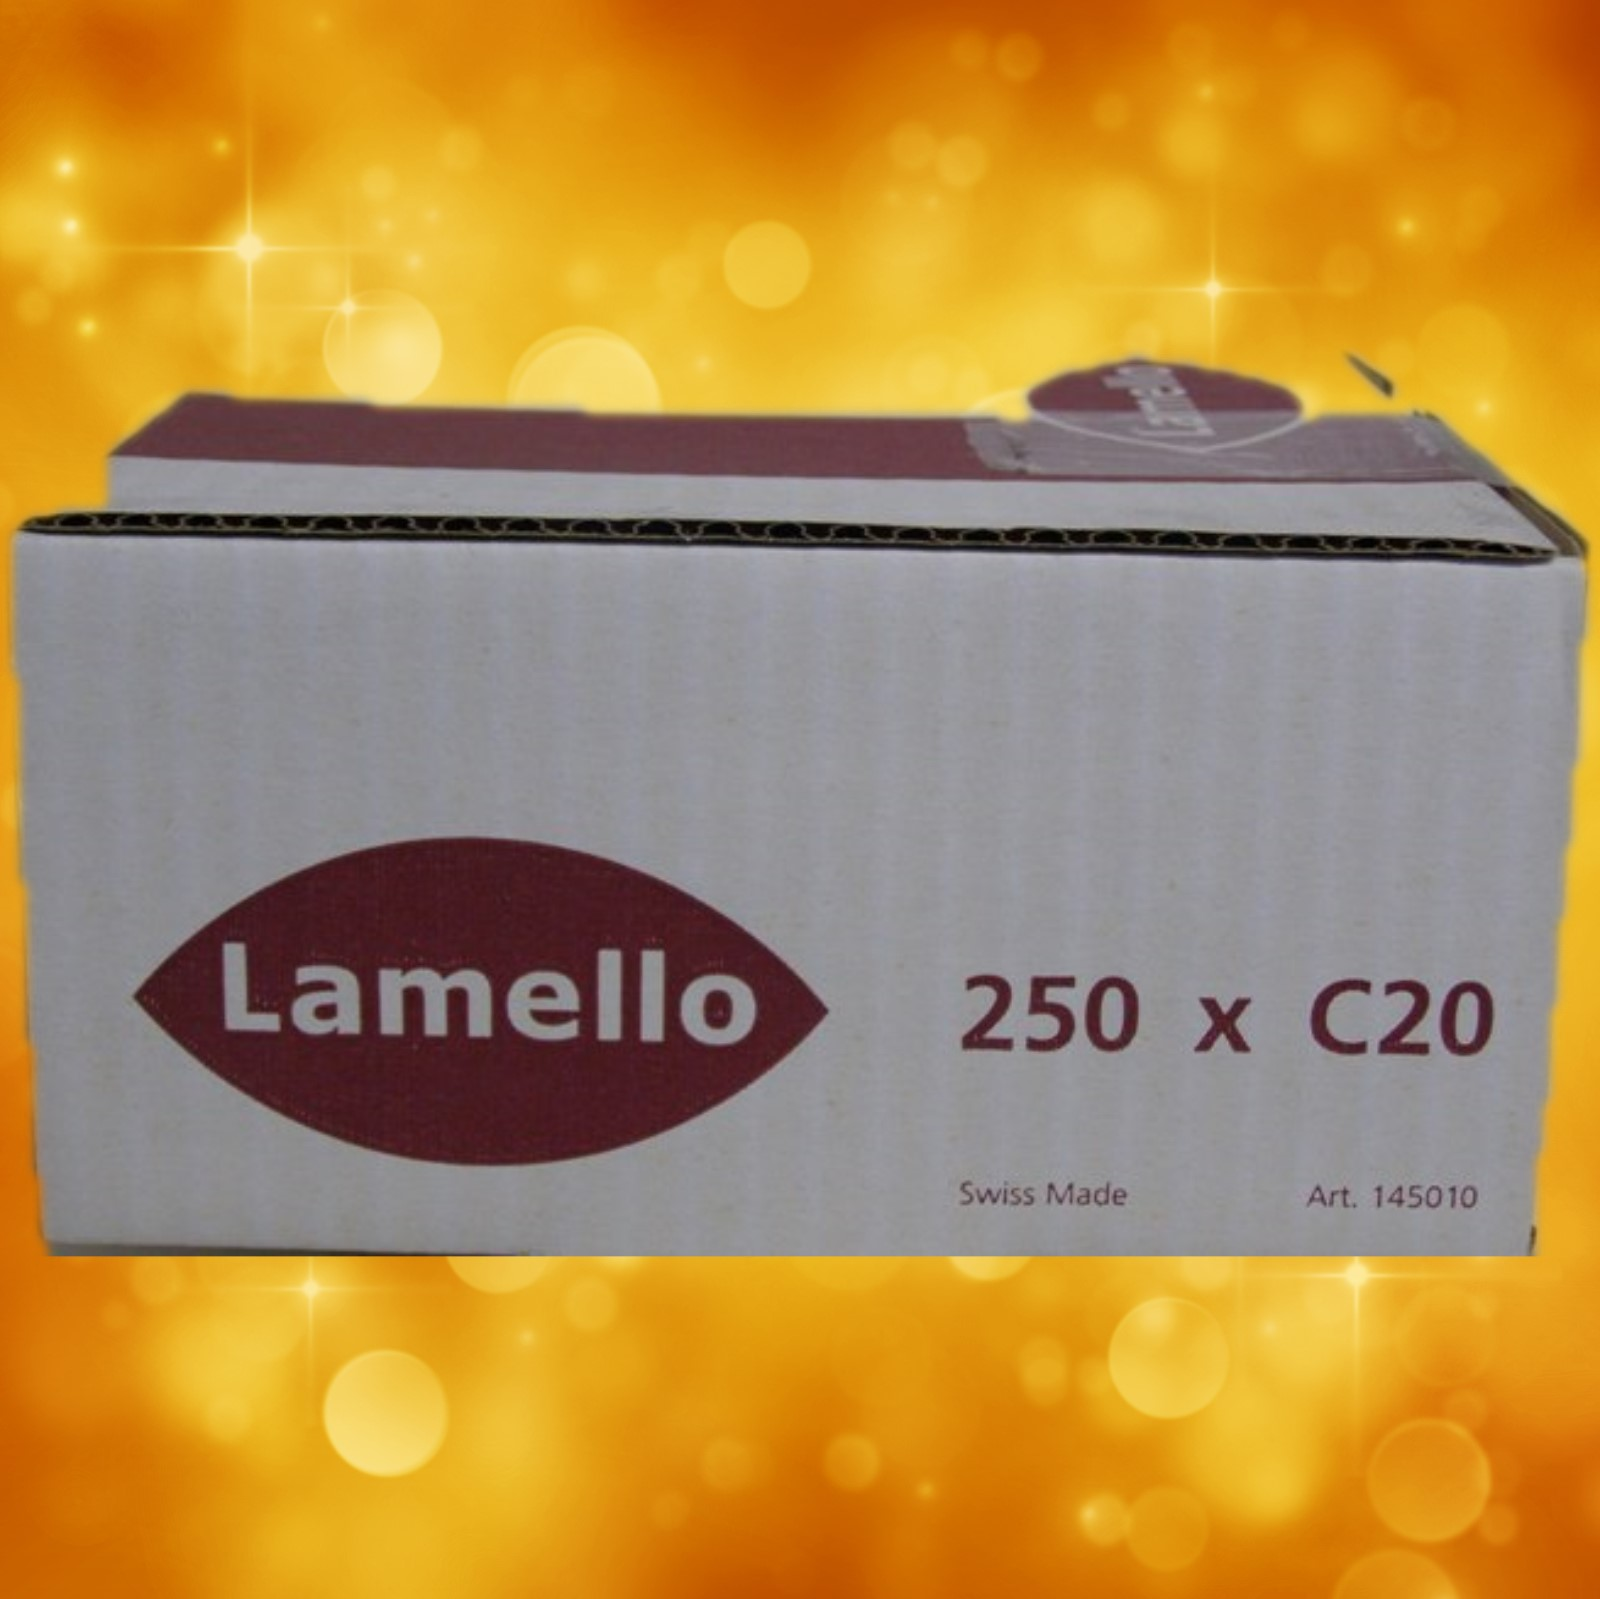 Lamello Solid Surface Biscuits C-20 Box of 250